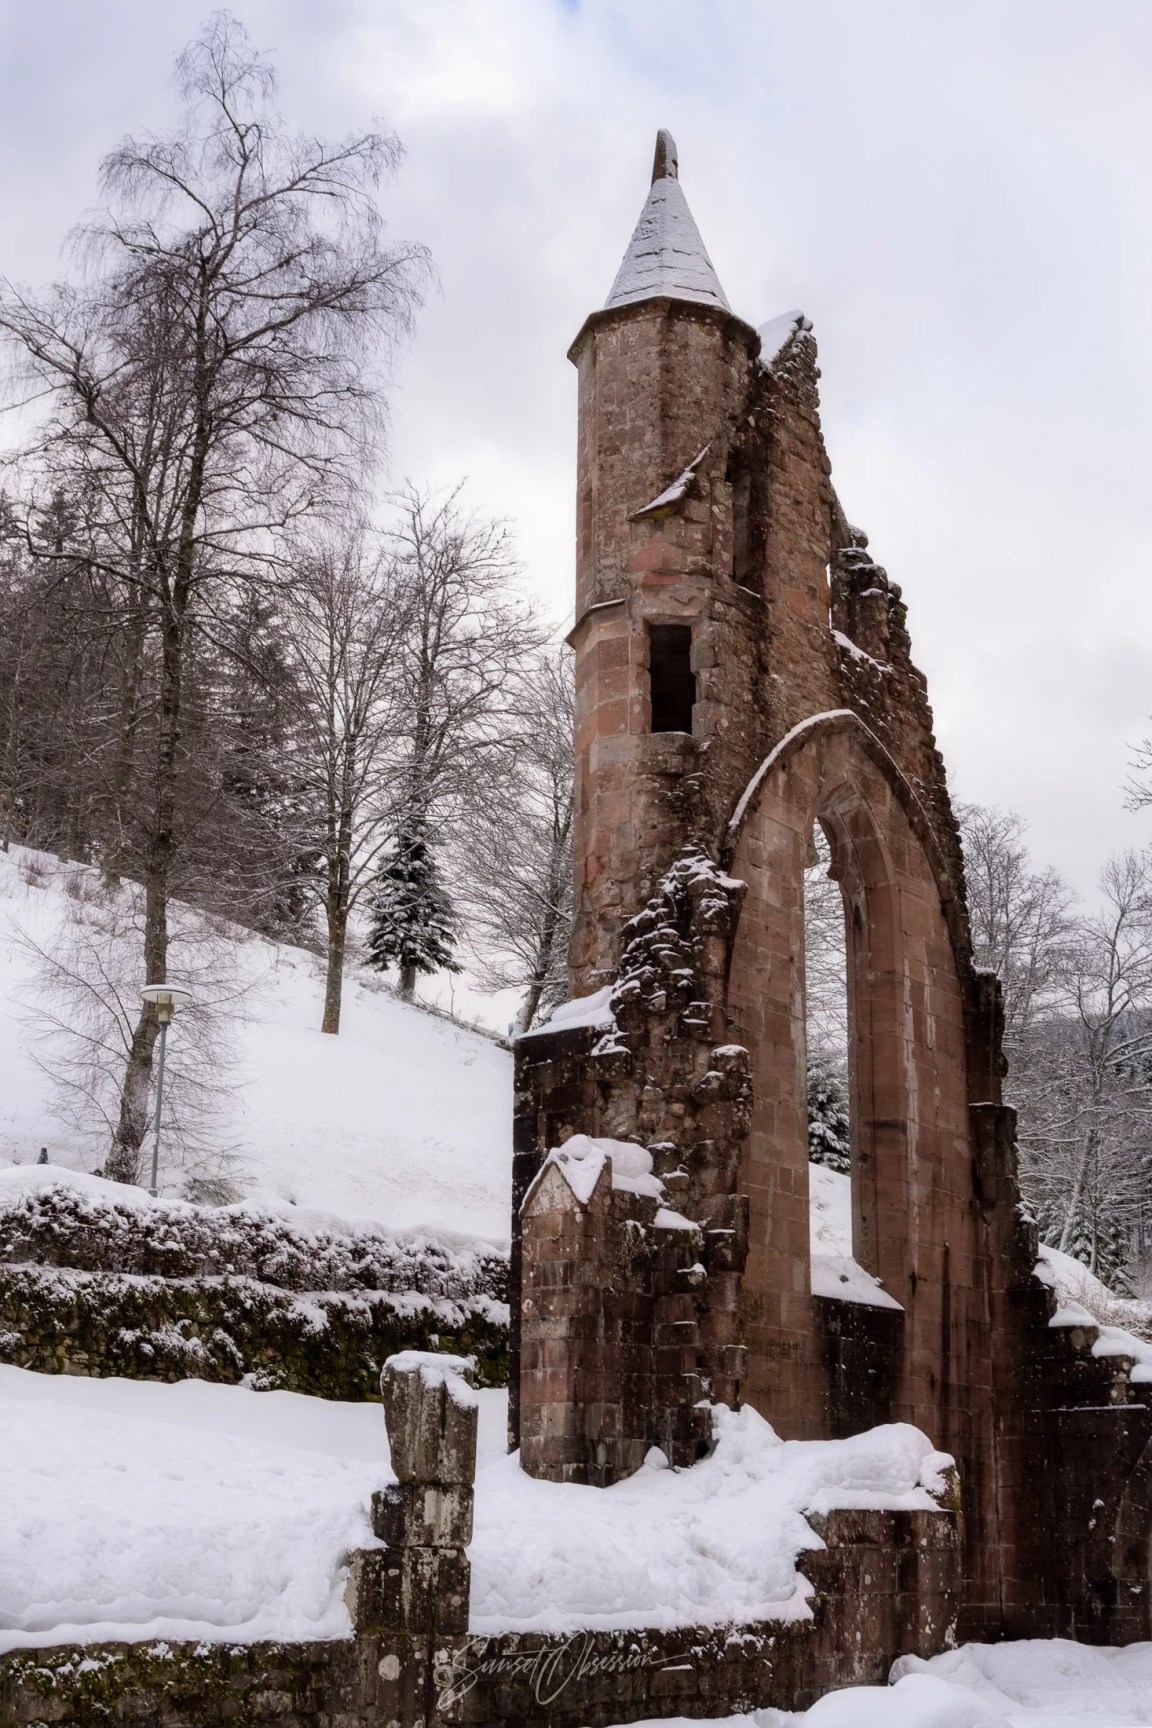 The ruins of the medieval tower in Black Forest, Germany